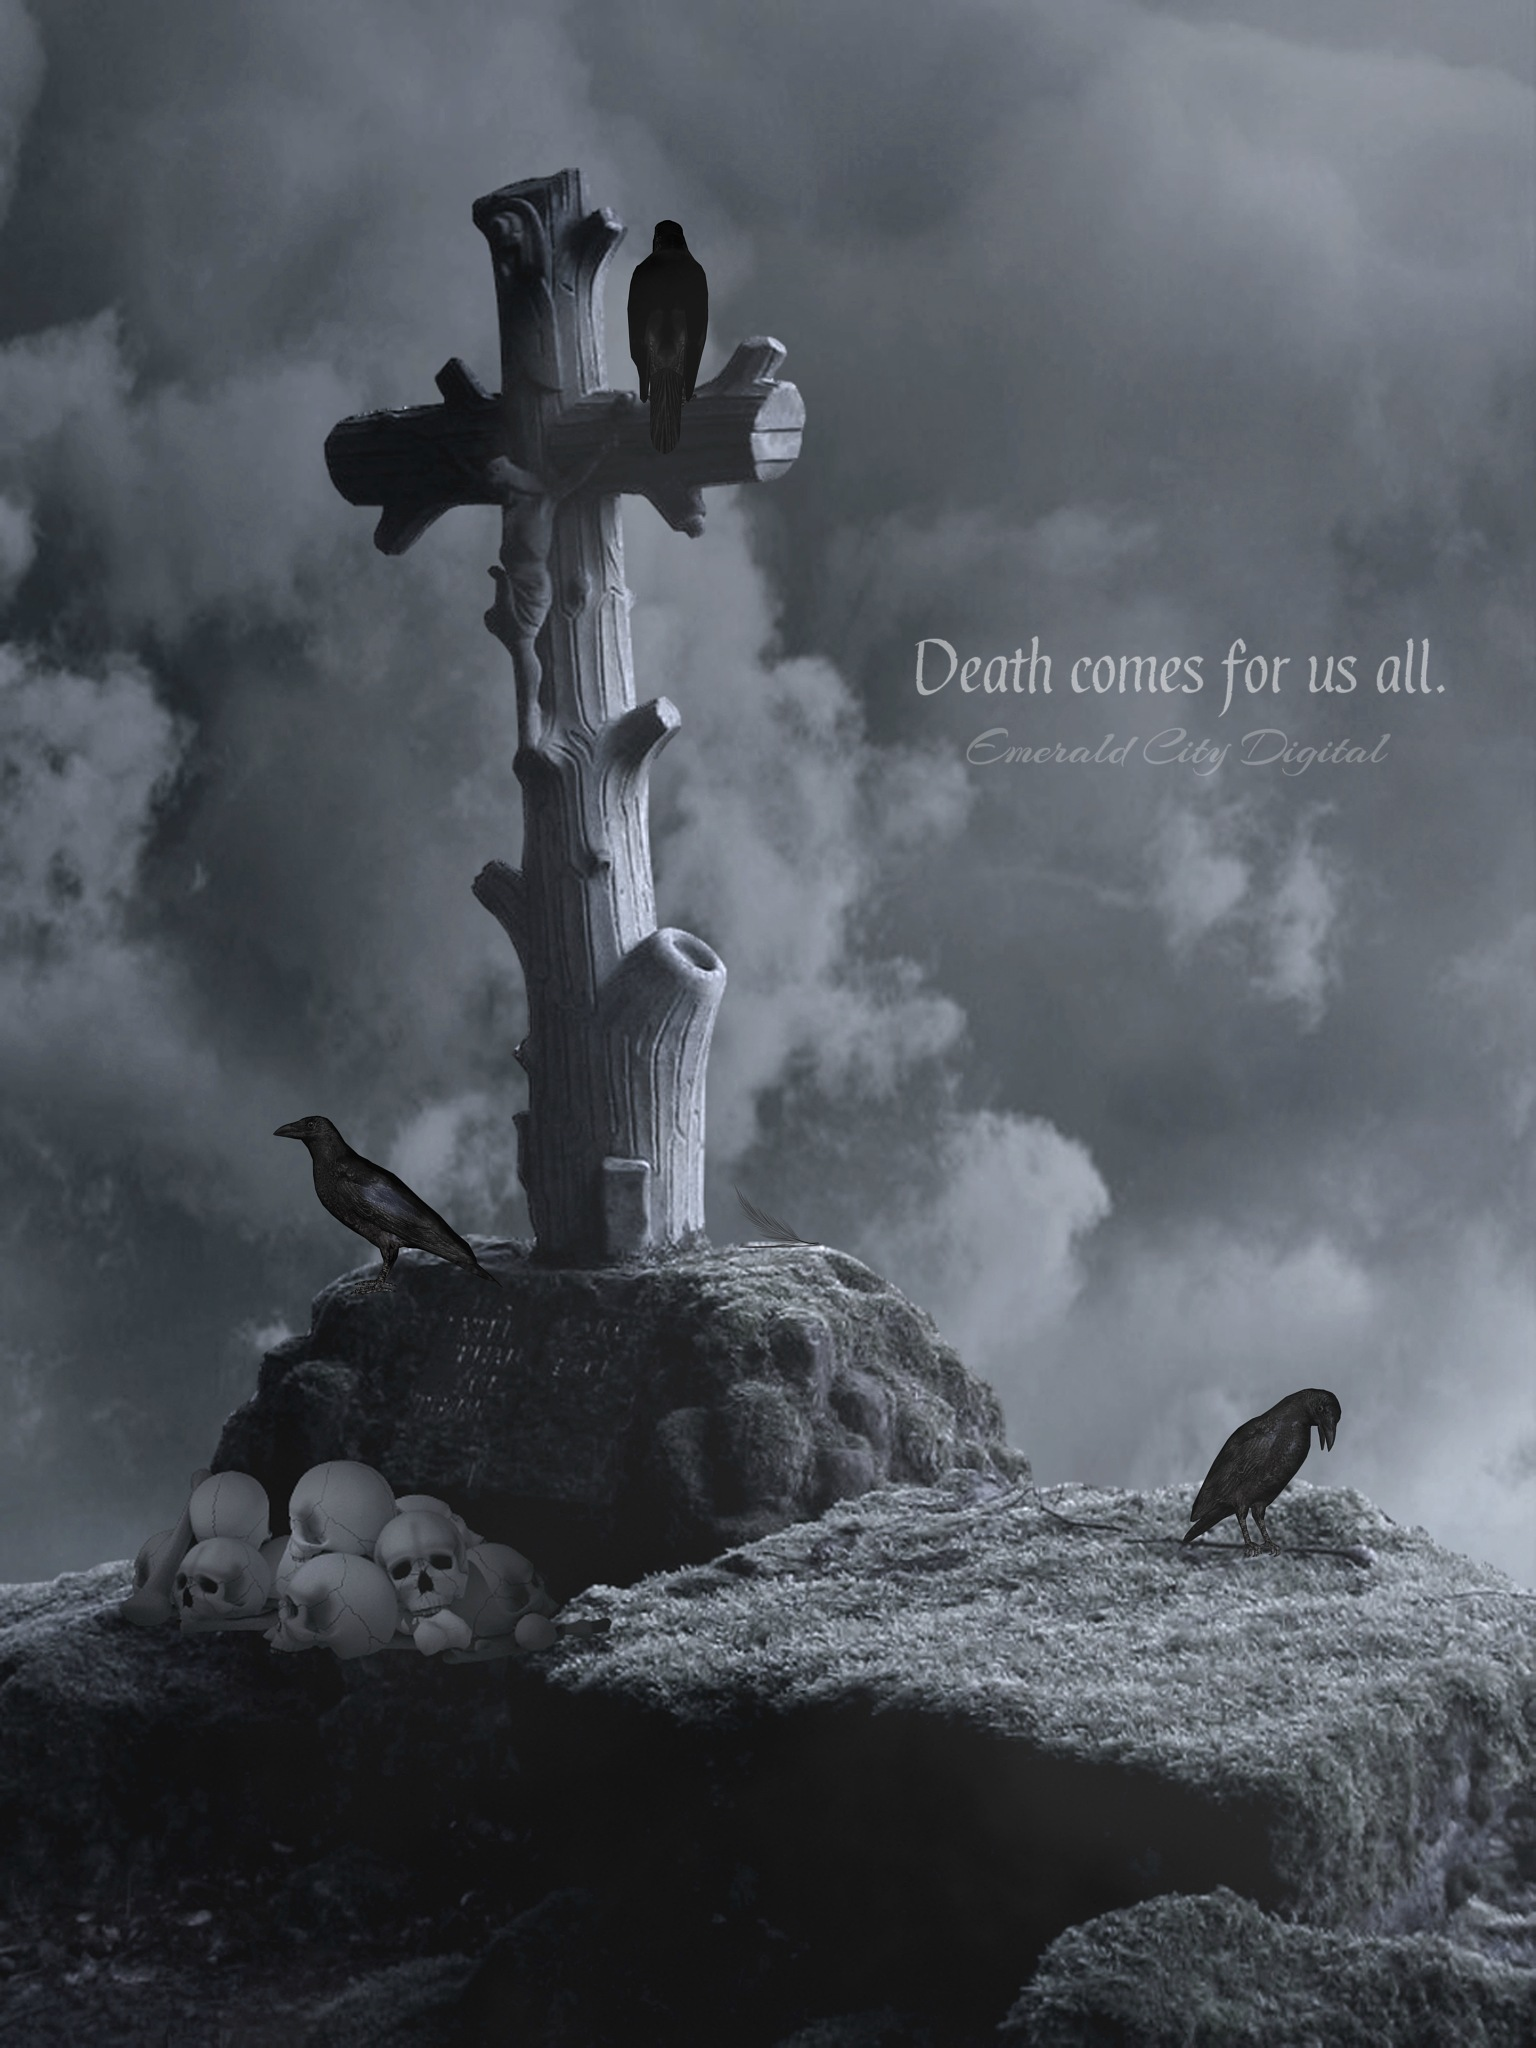 Death Comes For Us All by Emerald City Digital